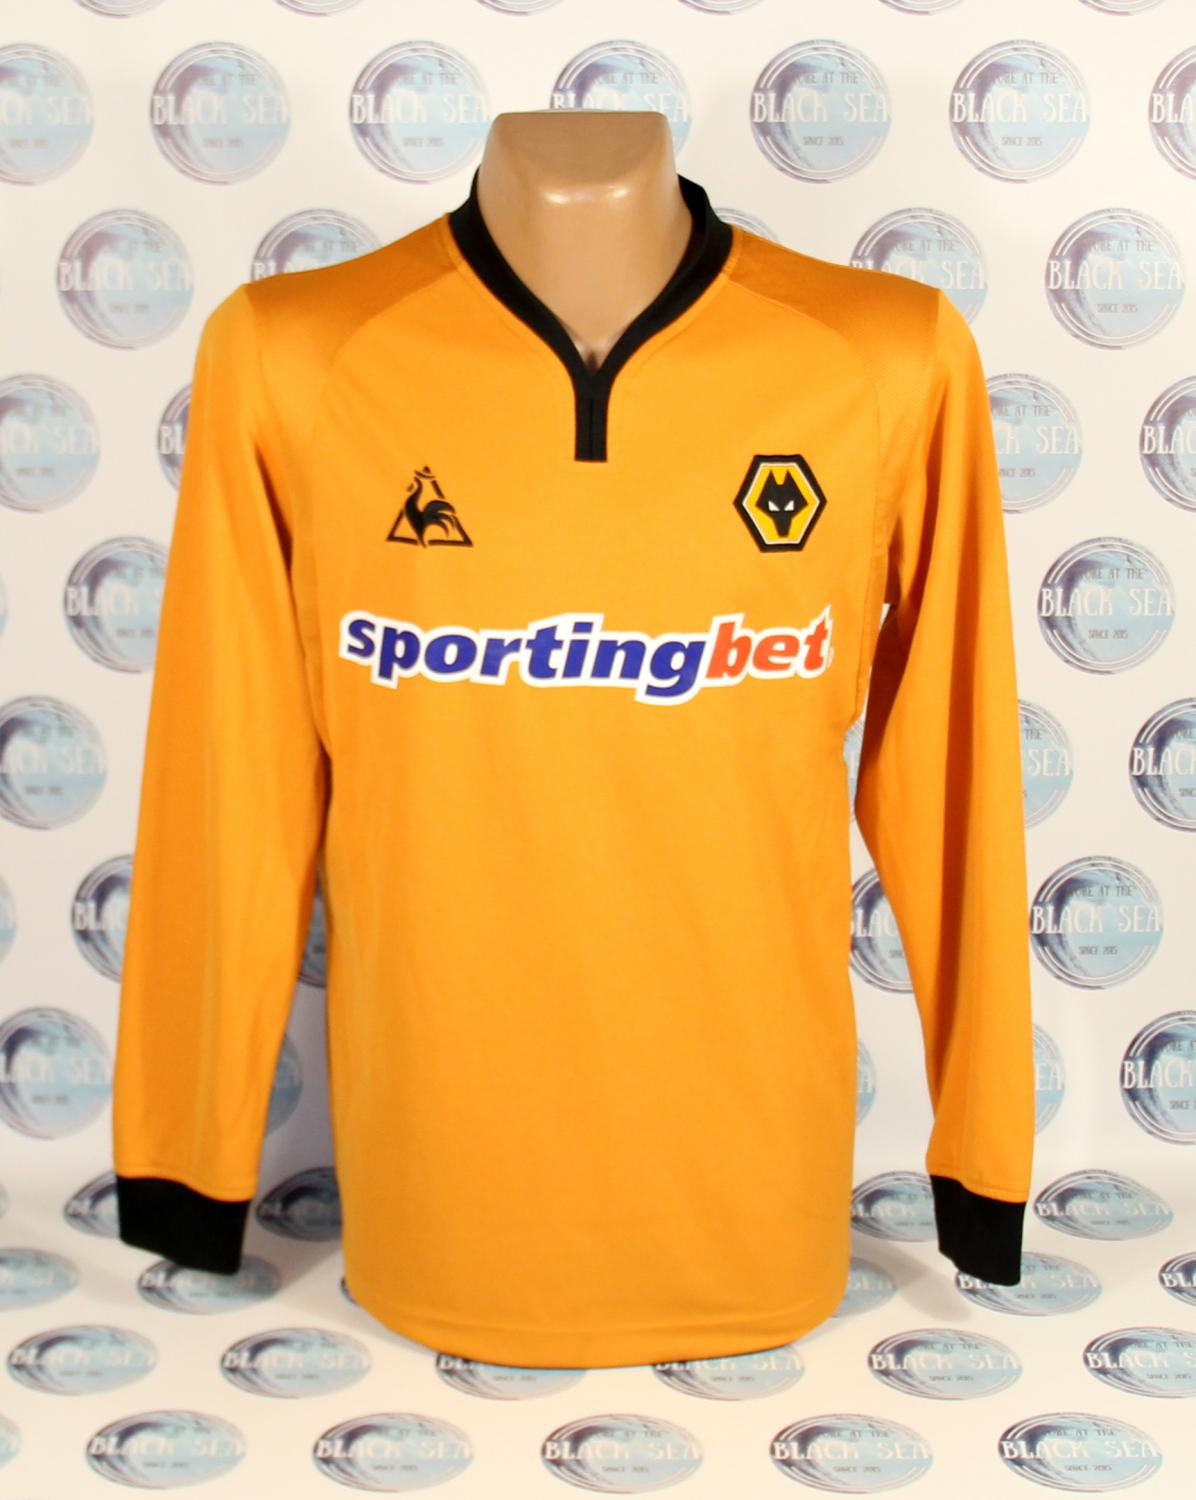 Wolverhampton Wanderers Home Maillot de foot 2009 - 2010. Sponsored ... 1ff592cd5